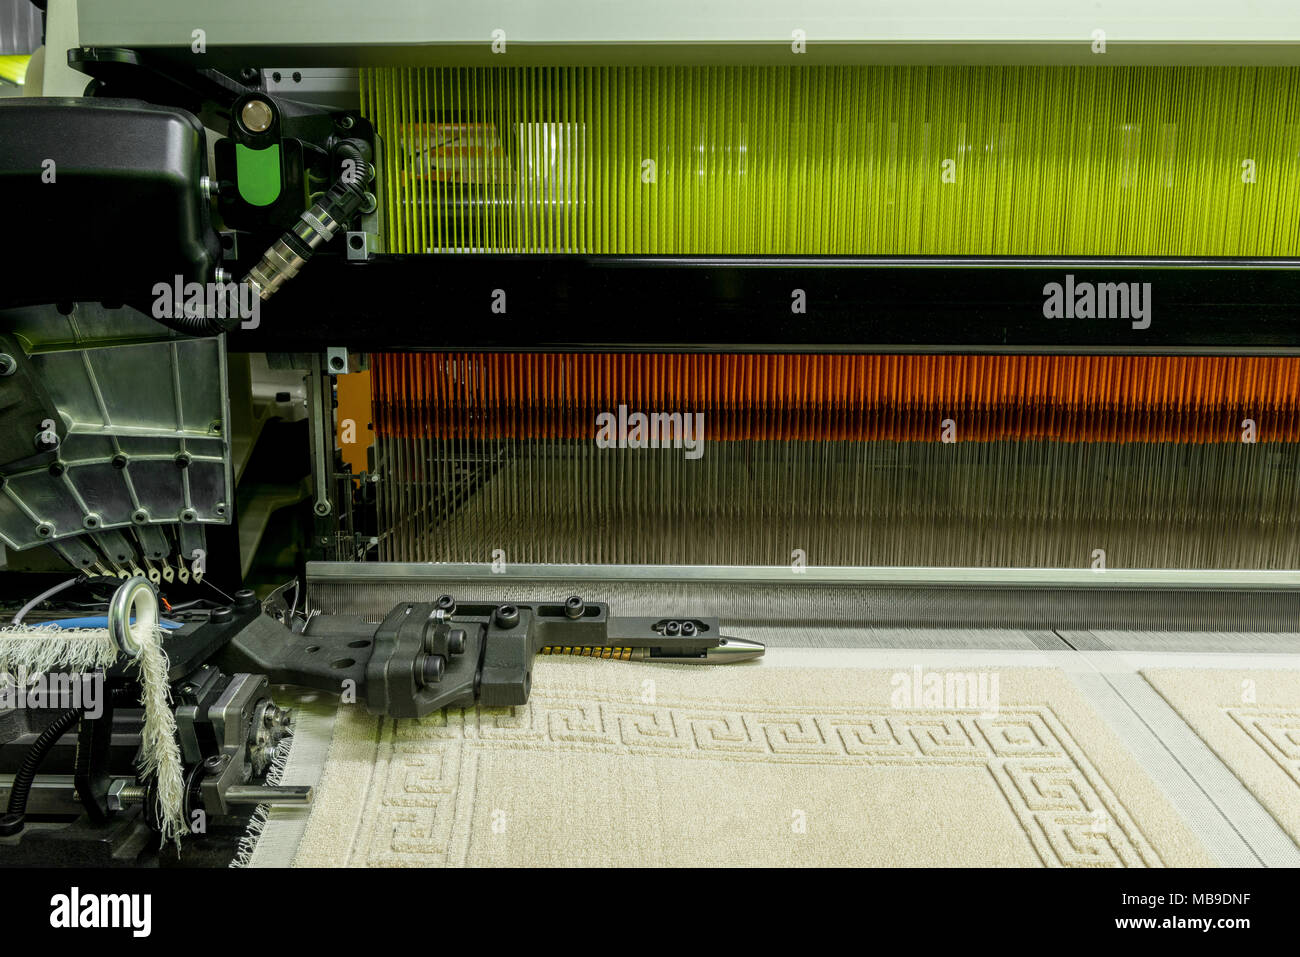 weaving loom at a textile factory, closeup. industrial fabric production line - Stock Image